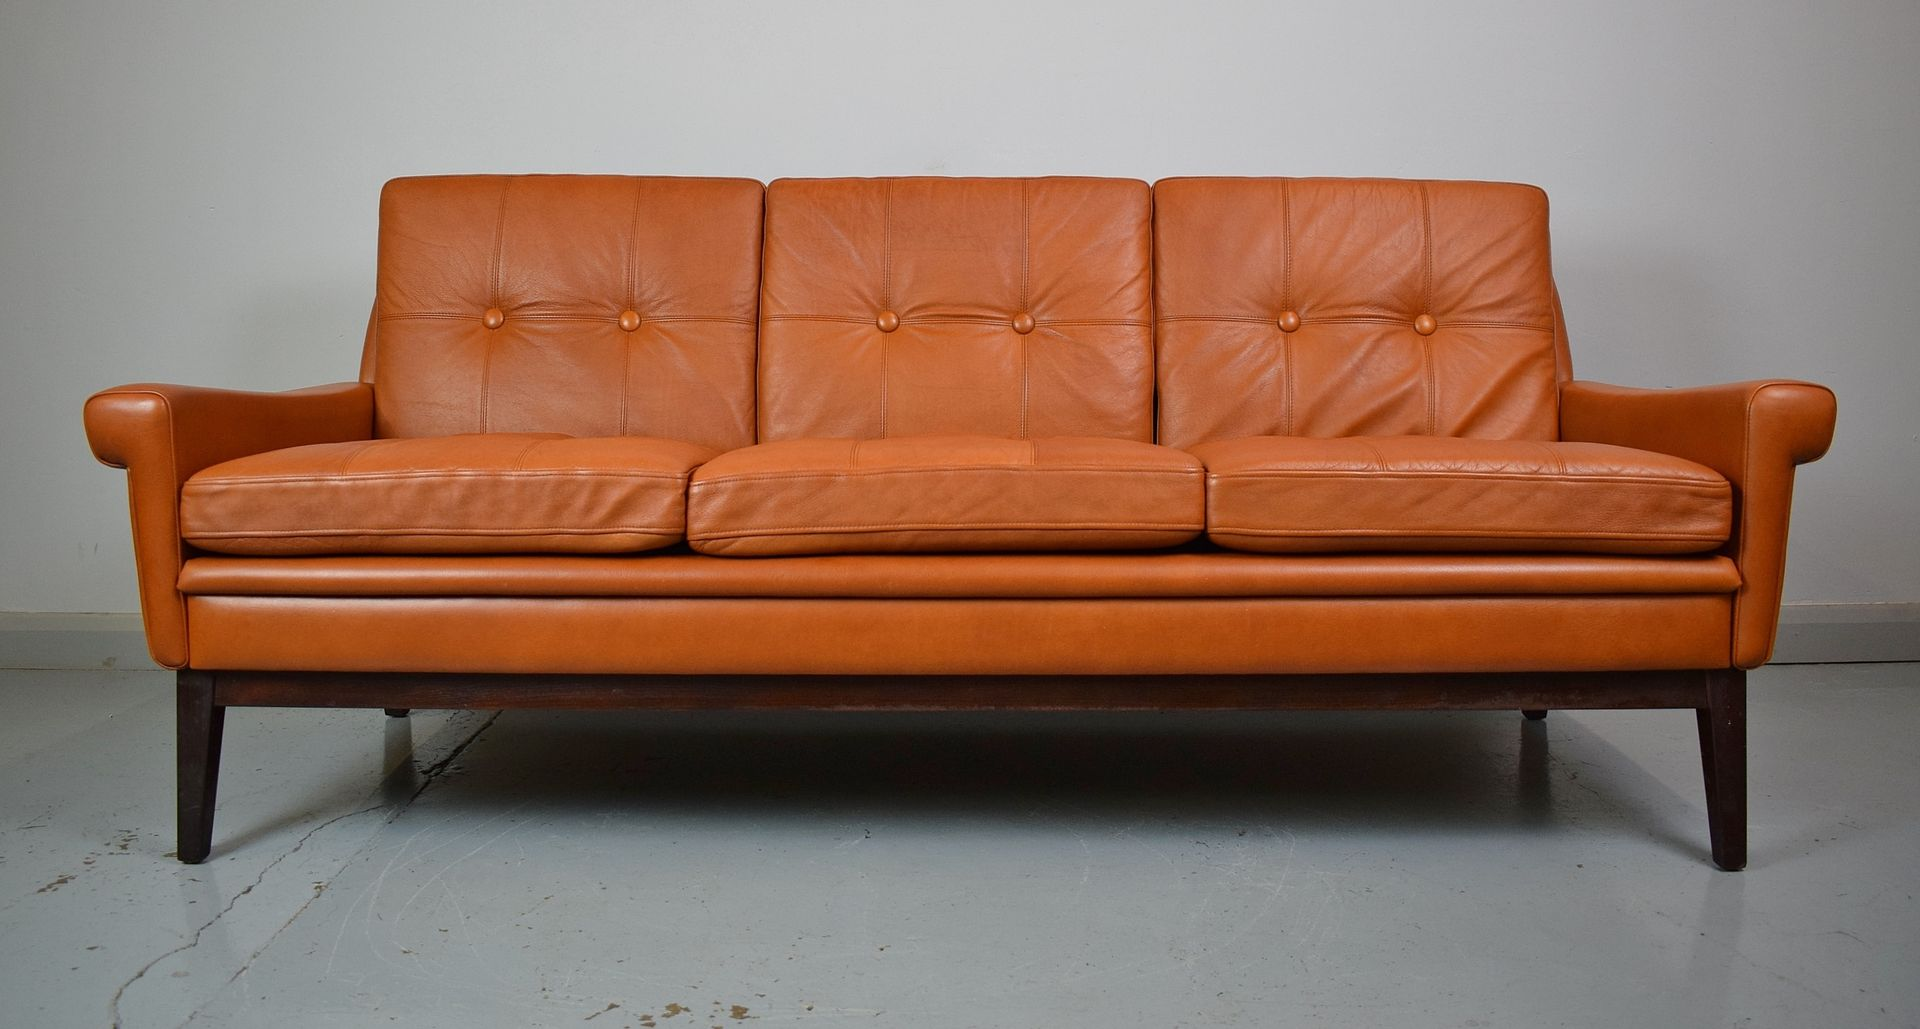 Tan leather 3 seater sofa by svend skipper for skipper for Tan couches for sale